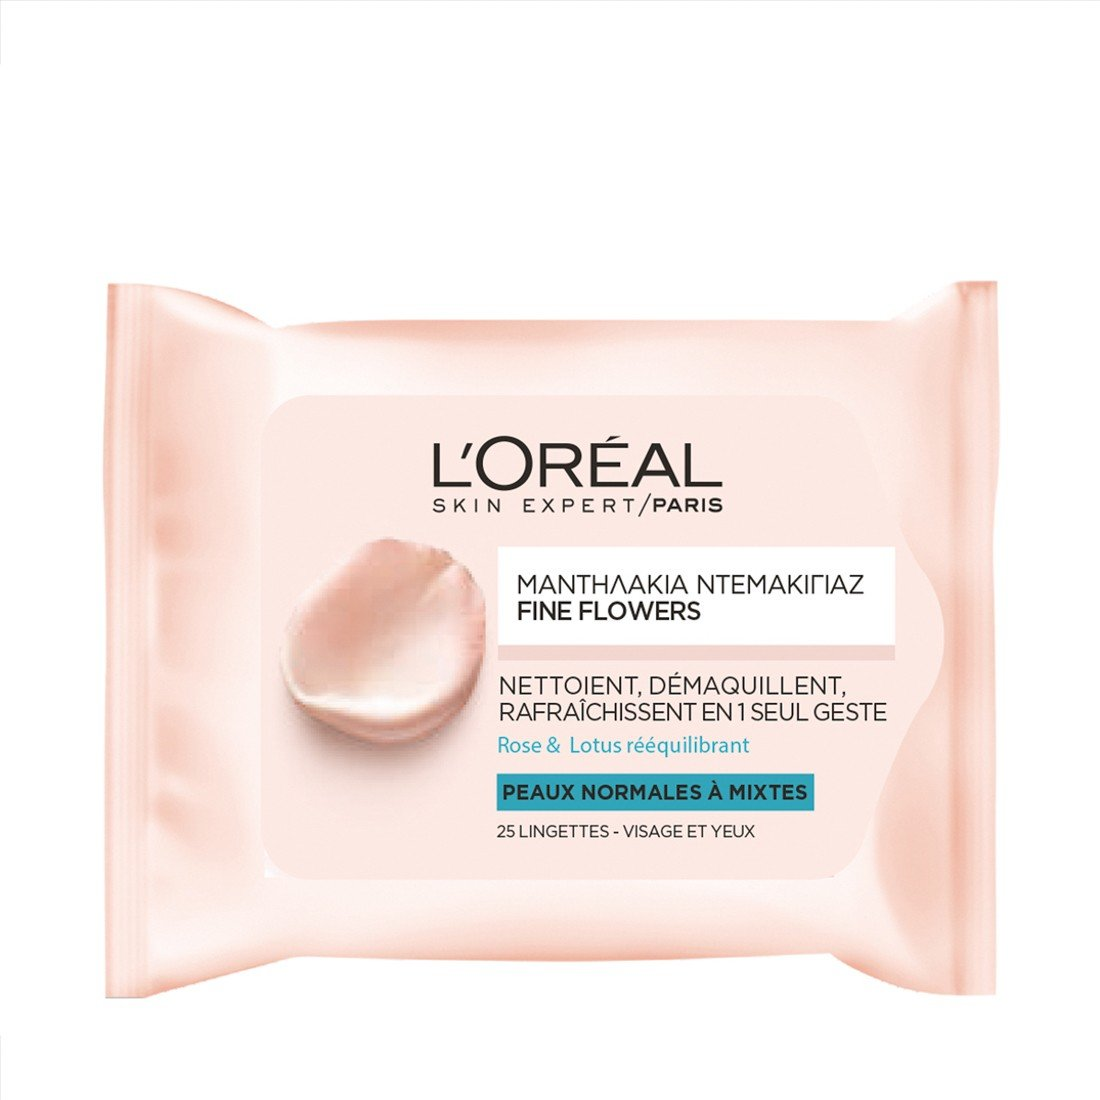 L'OREAL PARIS FINE FLOWERS CLEANSING WIPES NORMAL TO COMBINATION SKIN